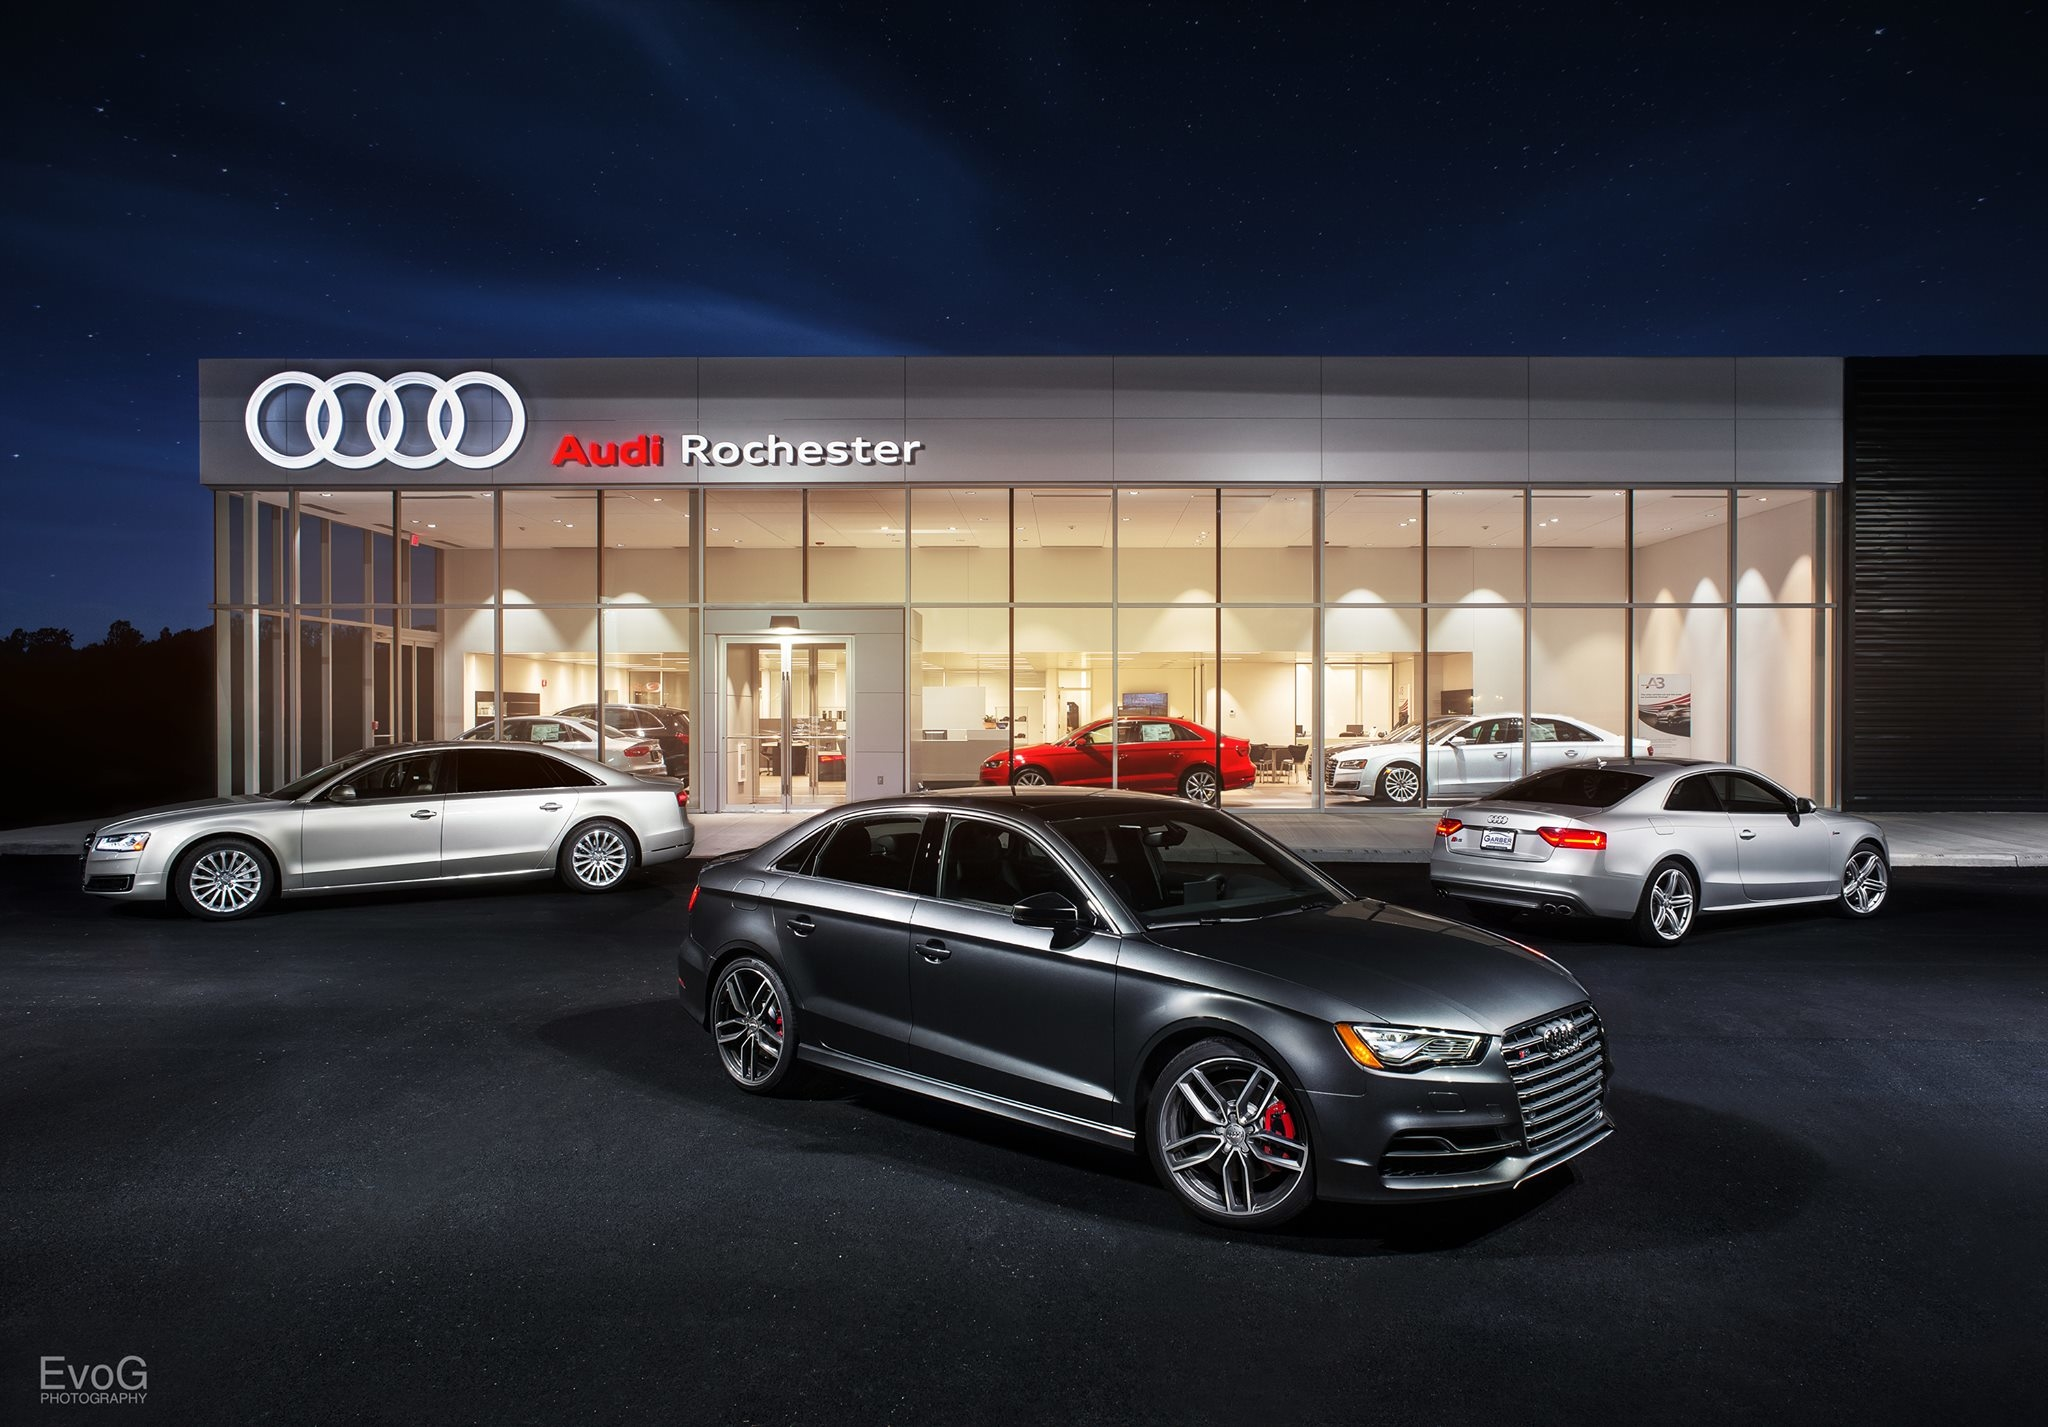 Audi rochester 3955 w henrietta rd rochester ny for Rochester department of motor vehicles